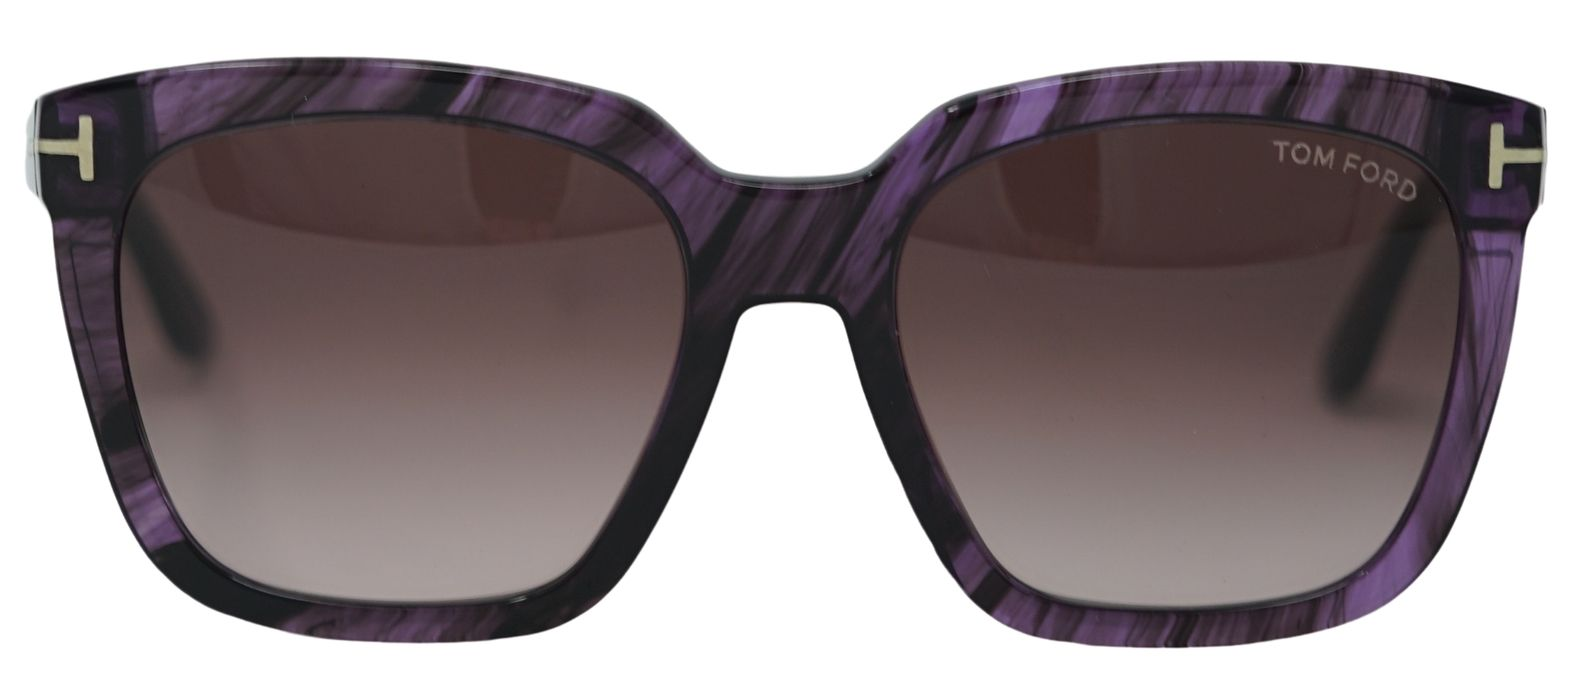 Tom Ford Amarra Sunglasses FT0502 83T